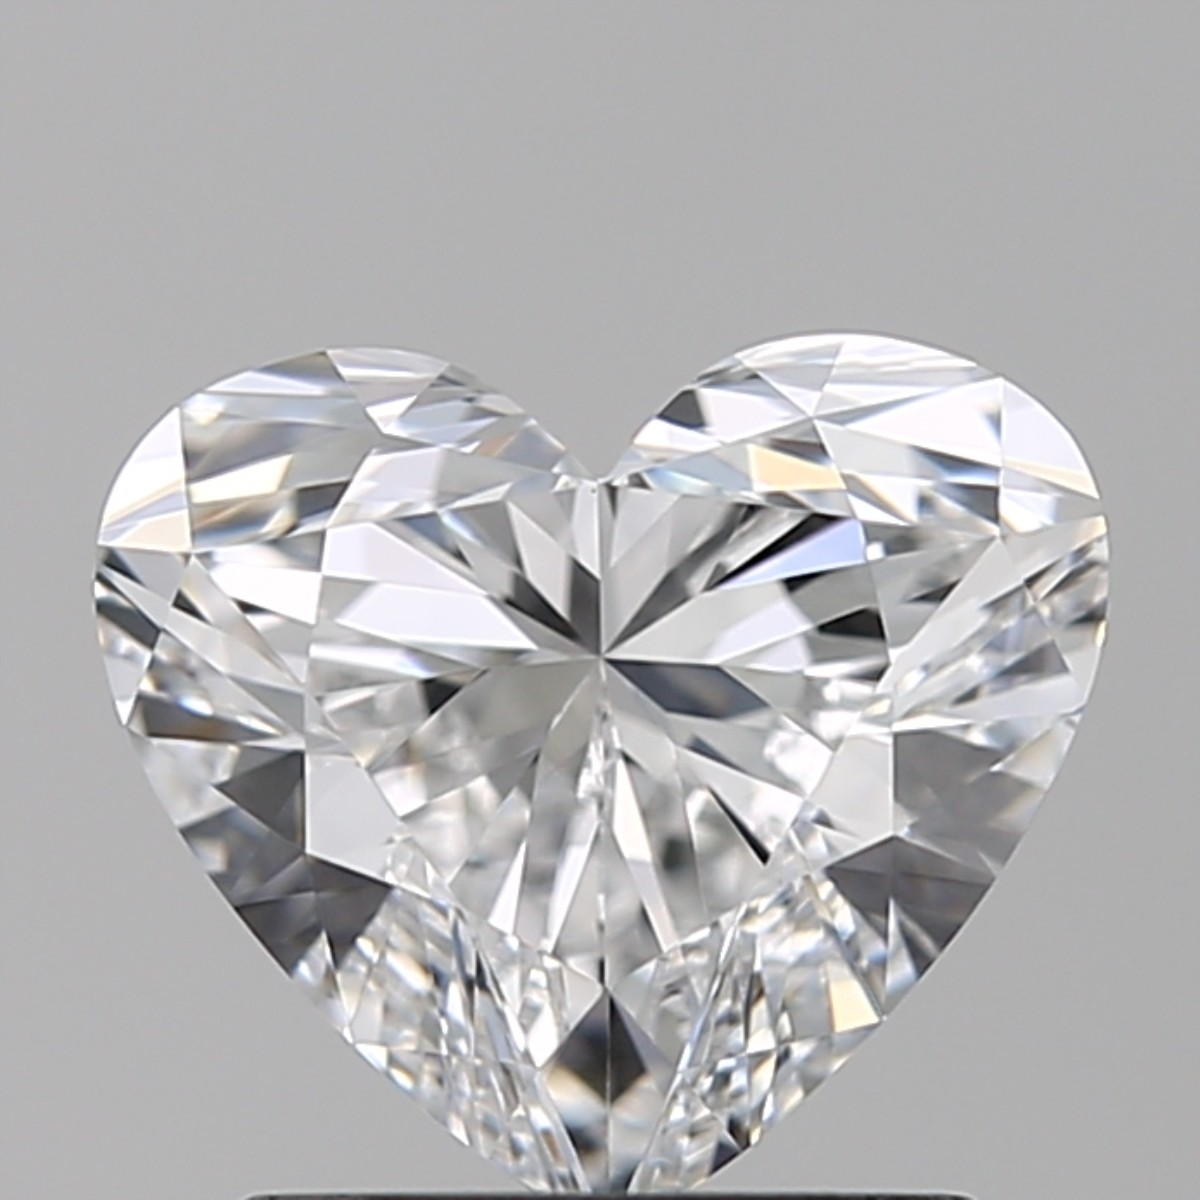 1.26 Carat Heart Diamond (D/VVS2)